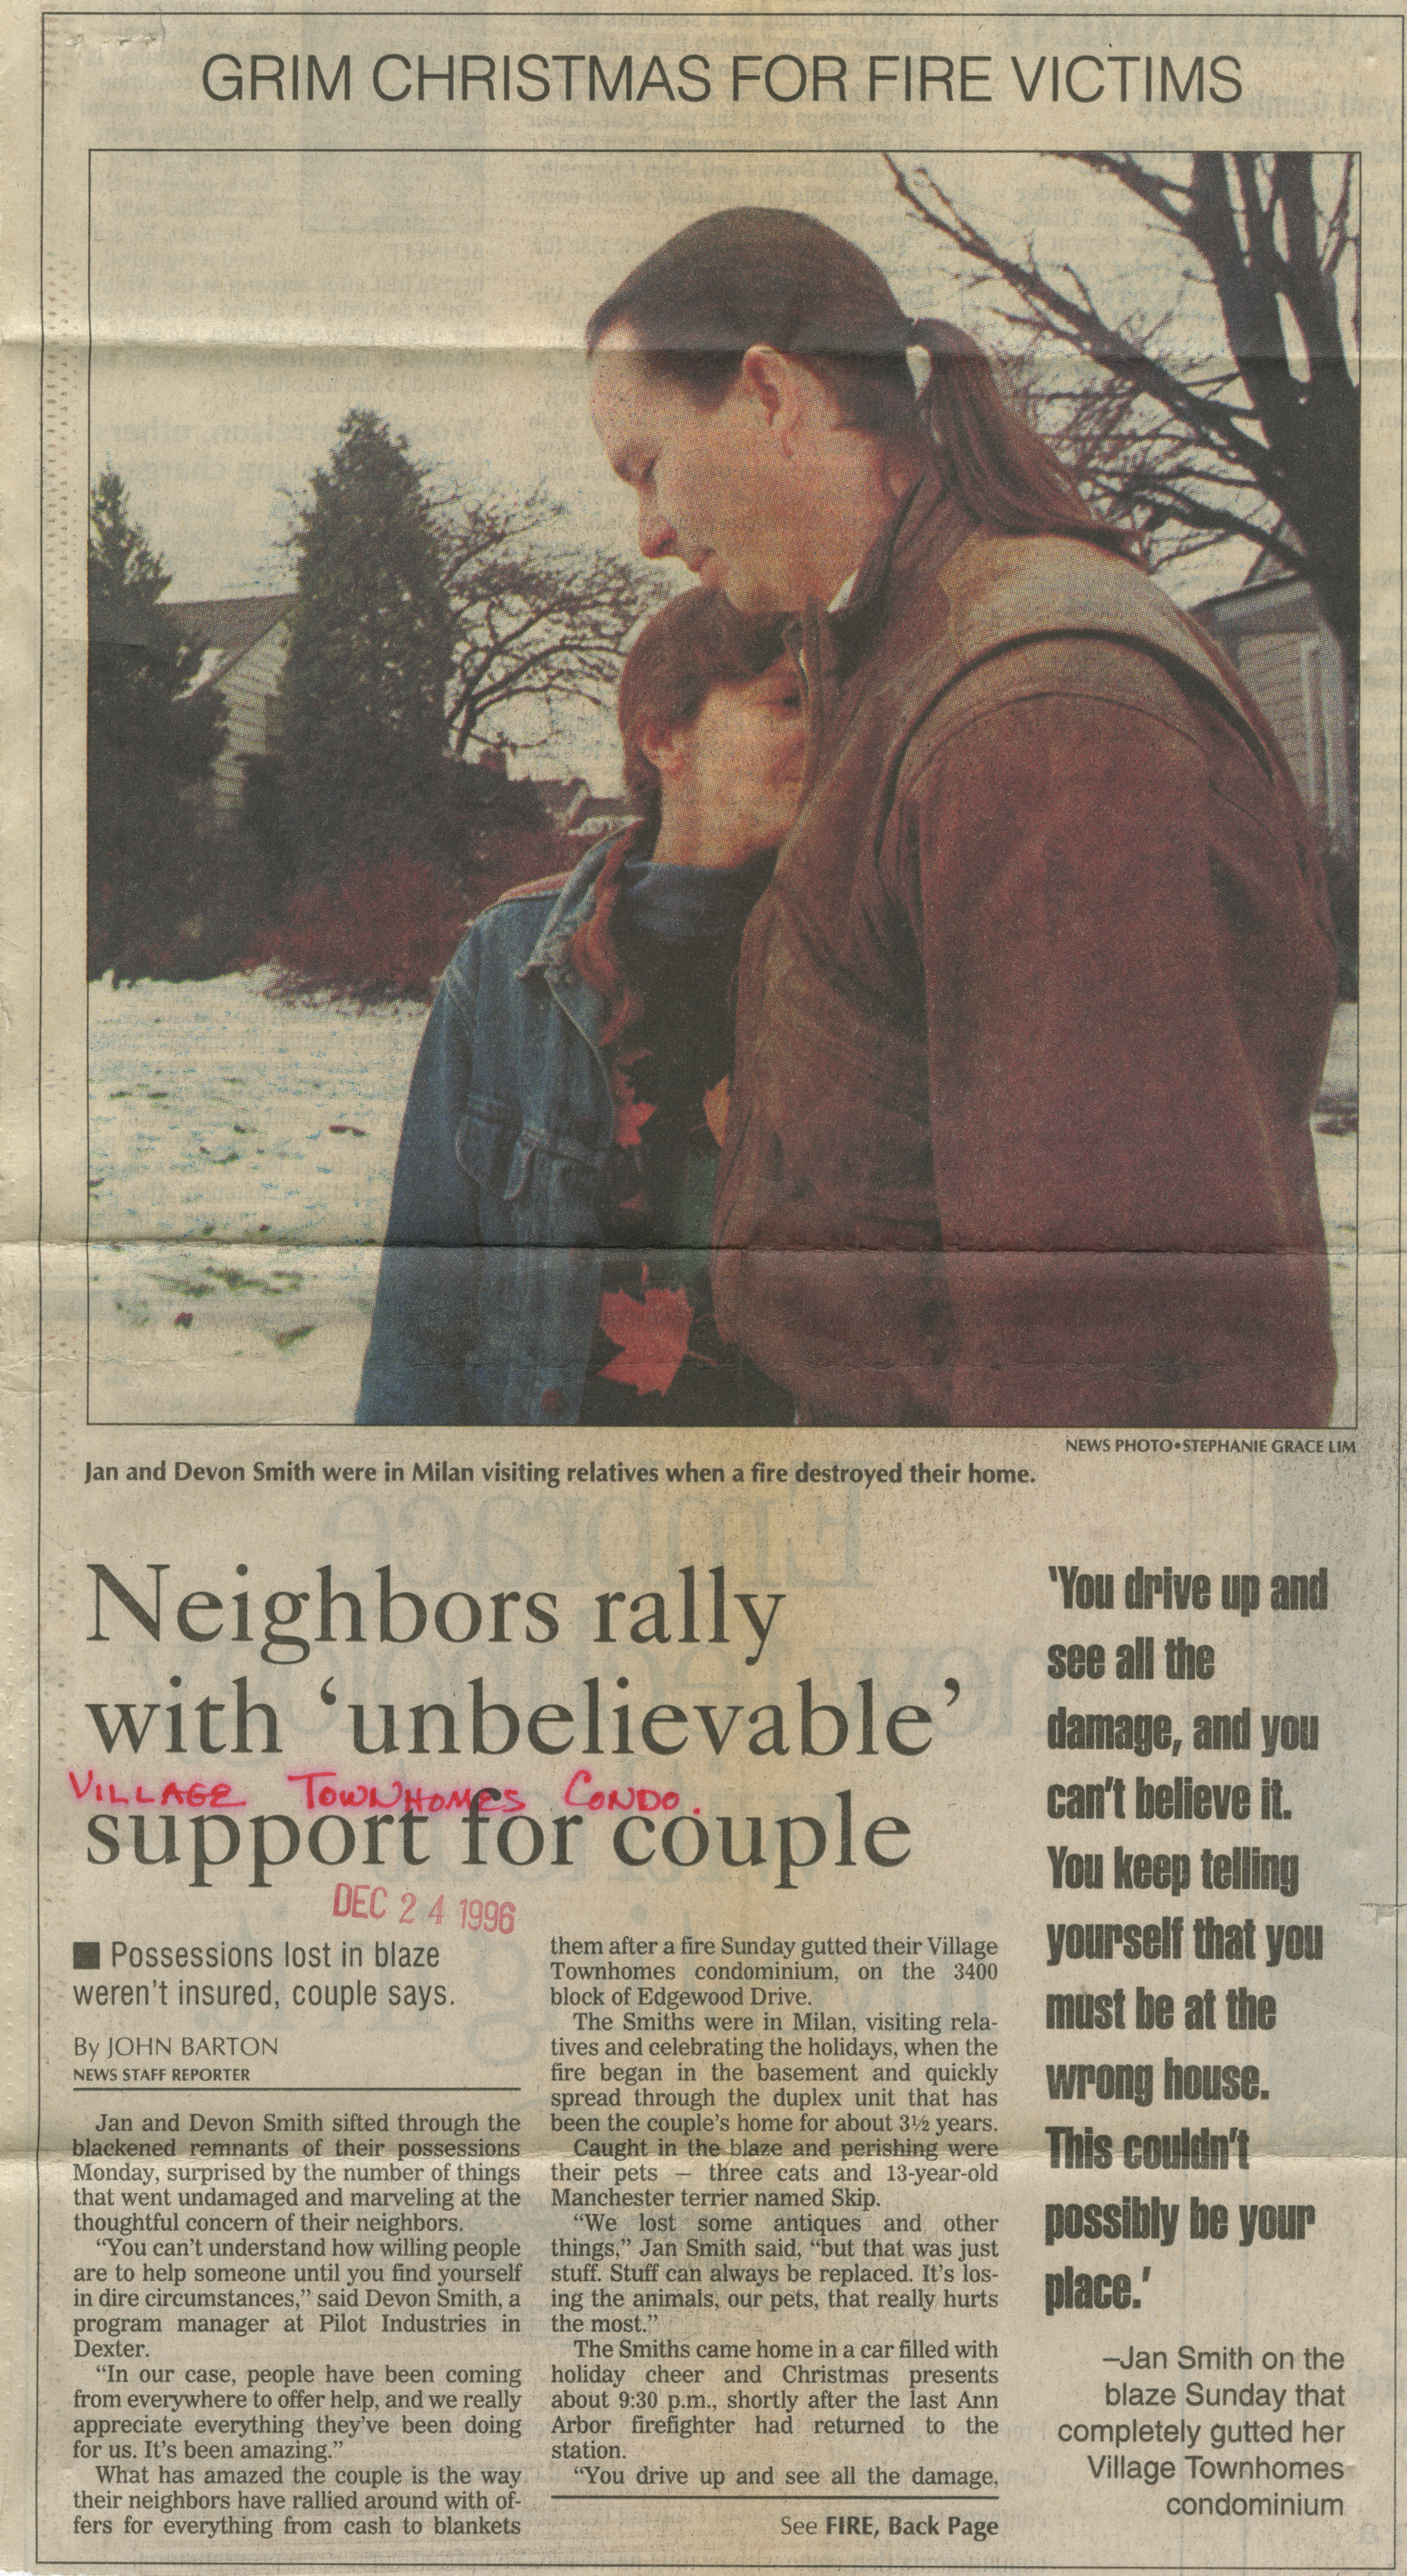 Neighbors rally with 'unbelievable' support for couple image